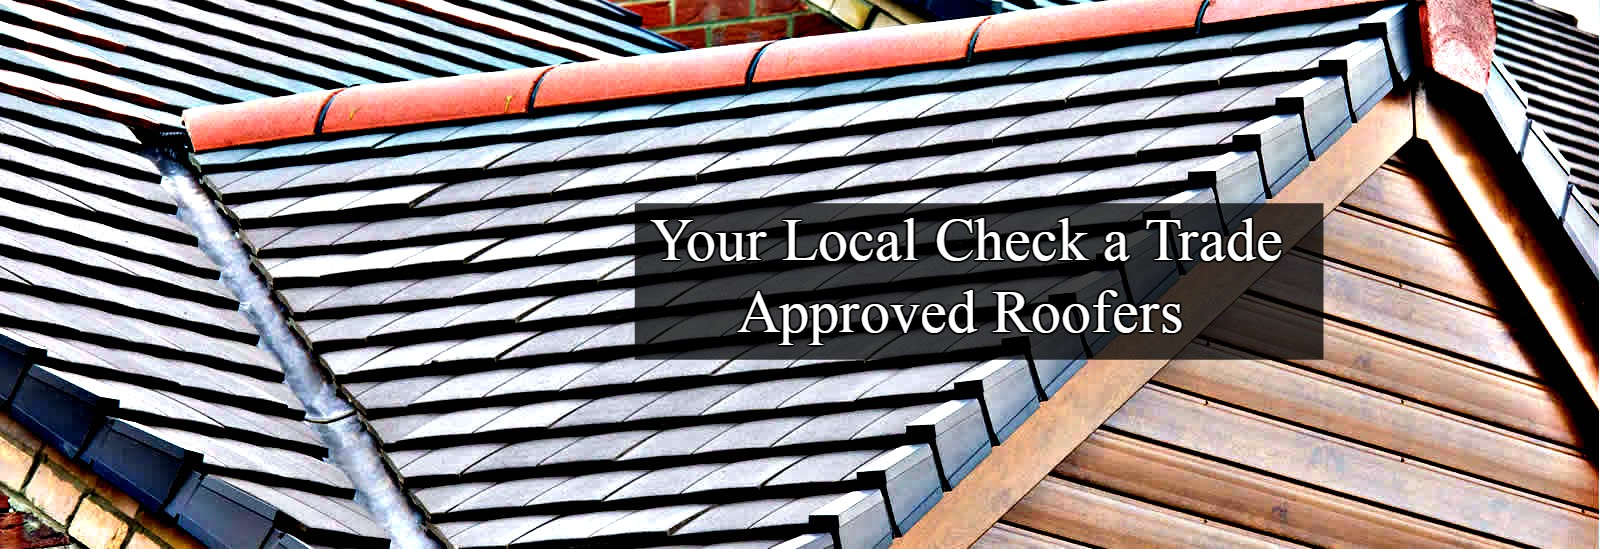 roofing services in Haxby